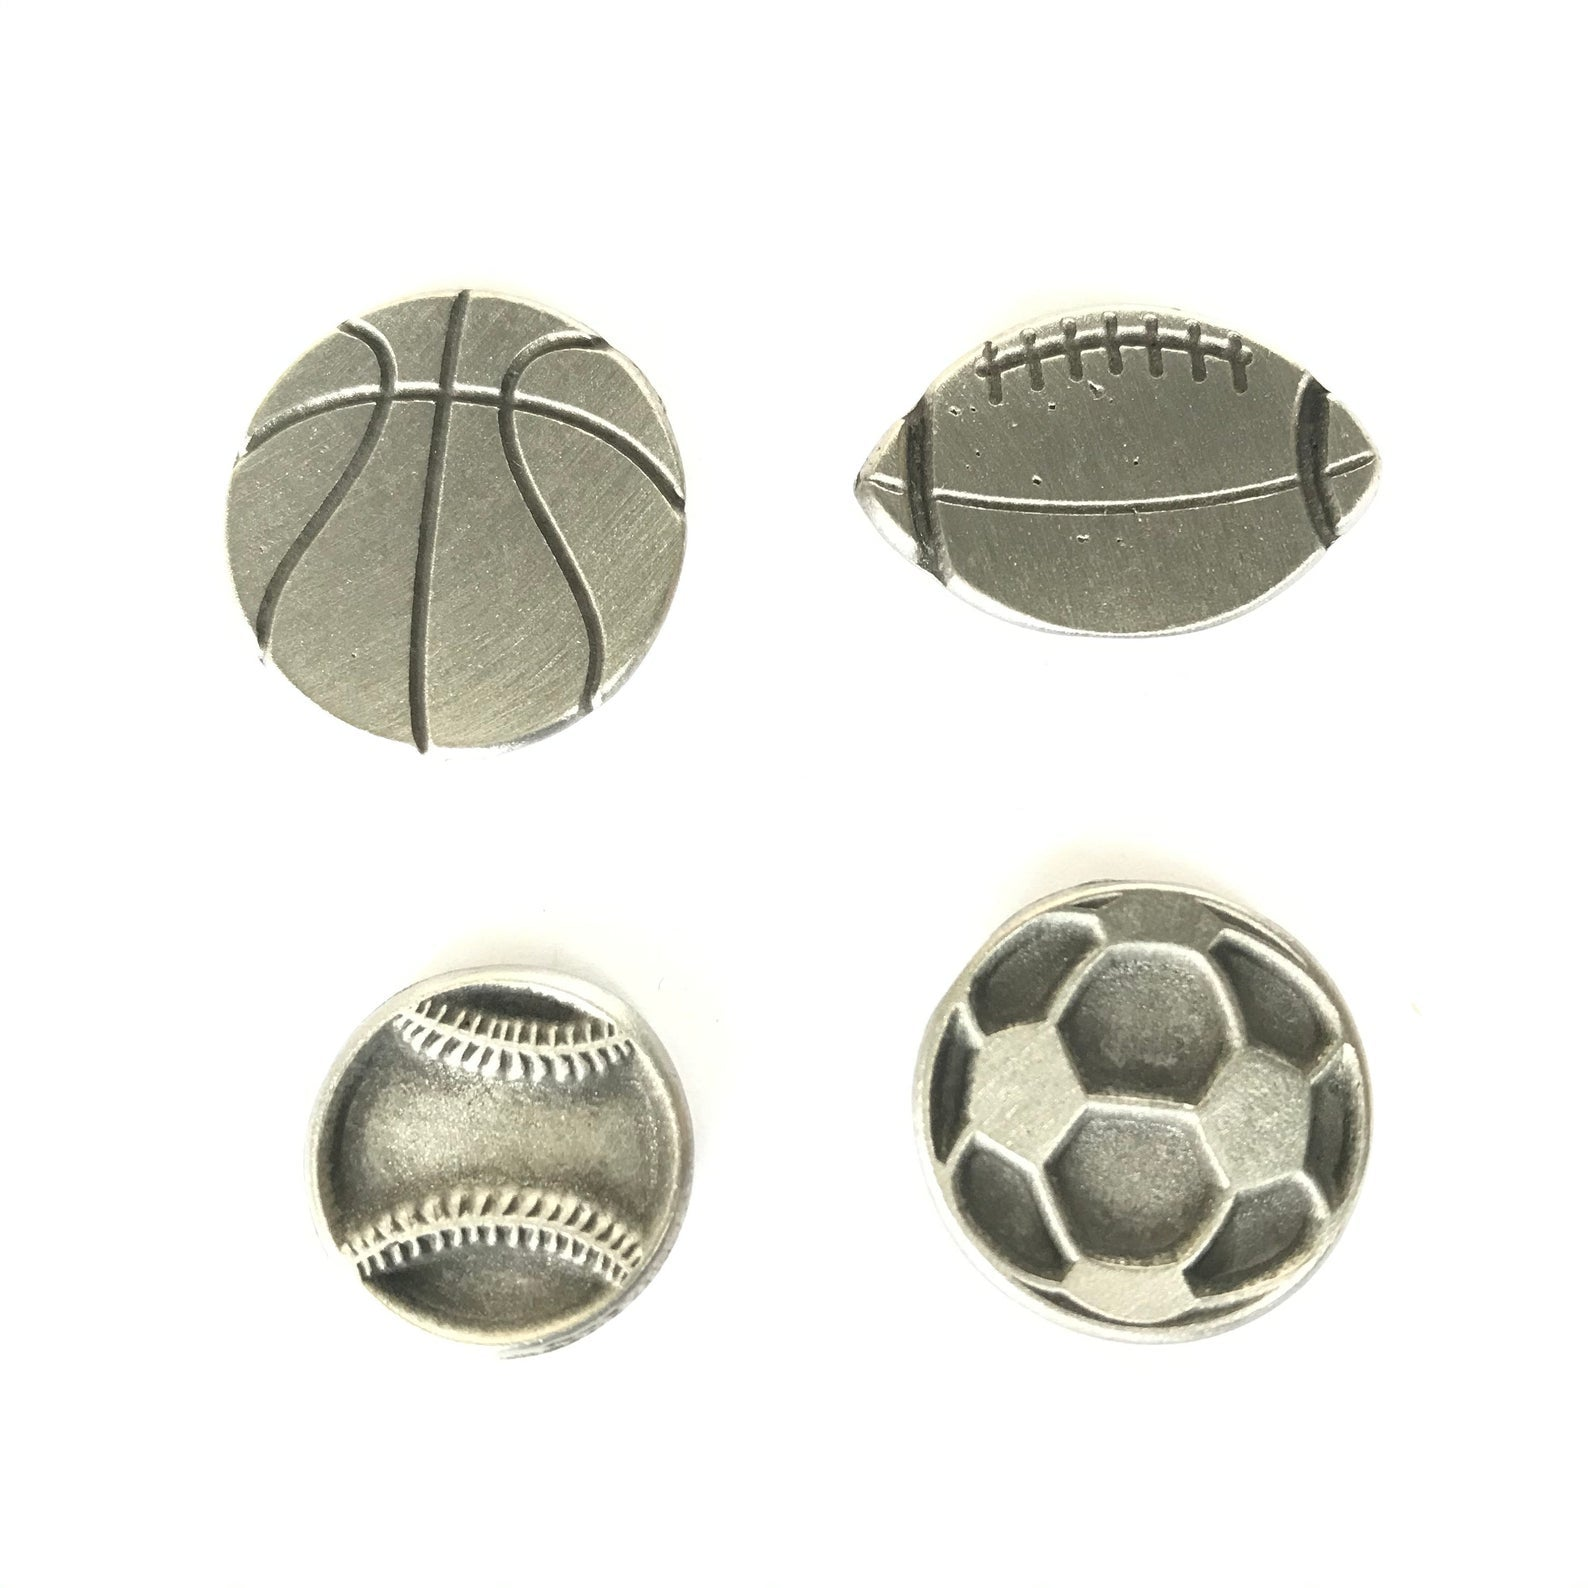 Magnet Set of 4 Sports balls